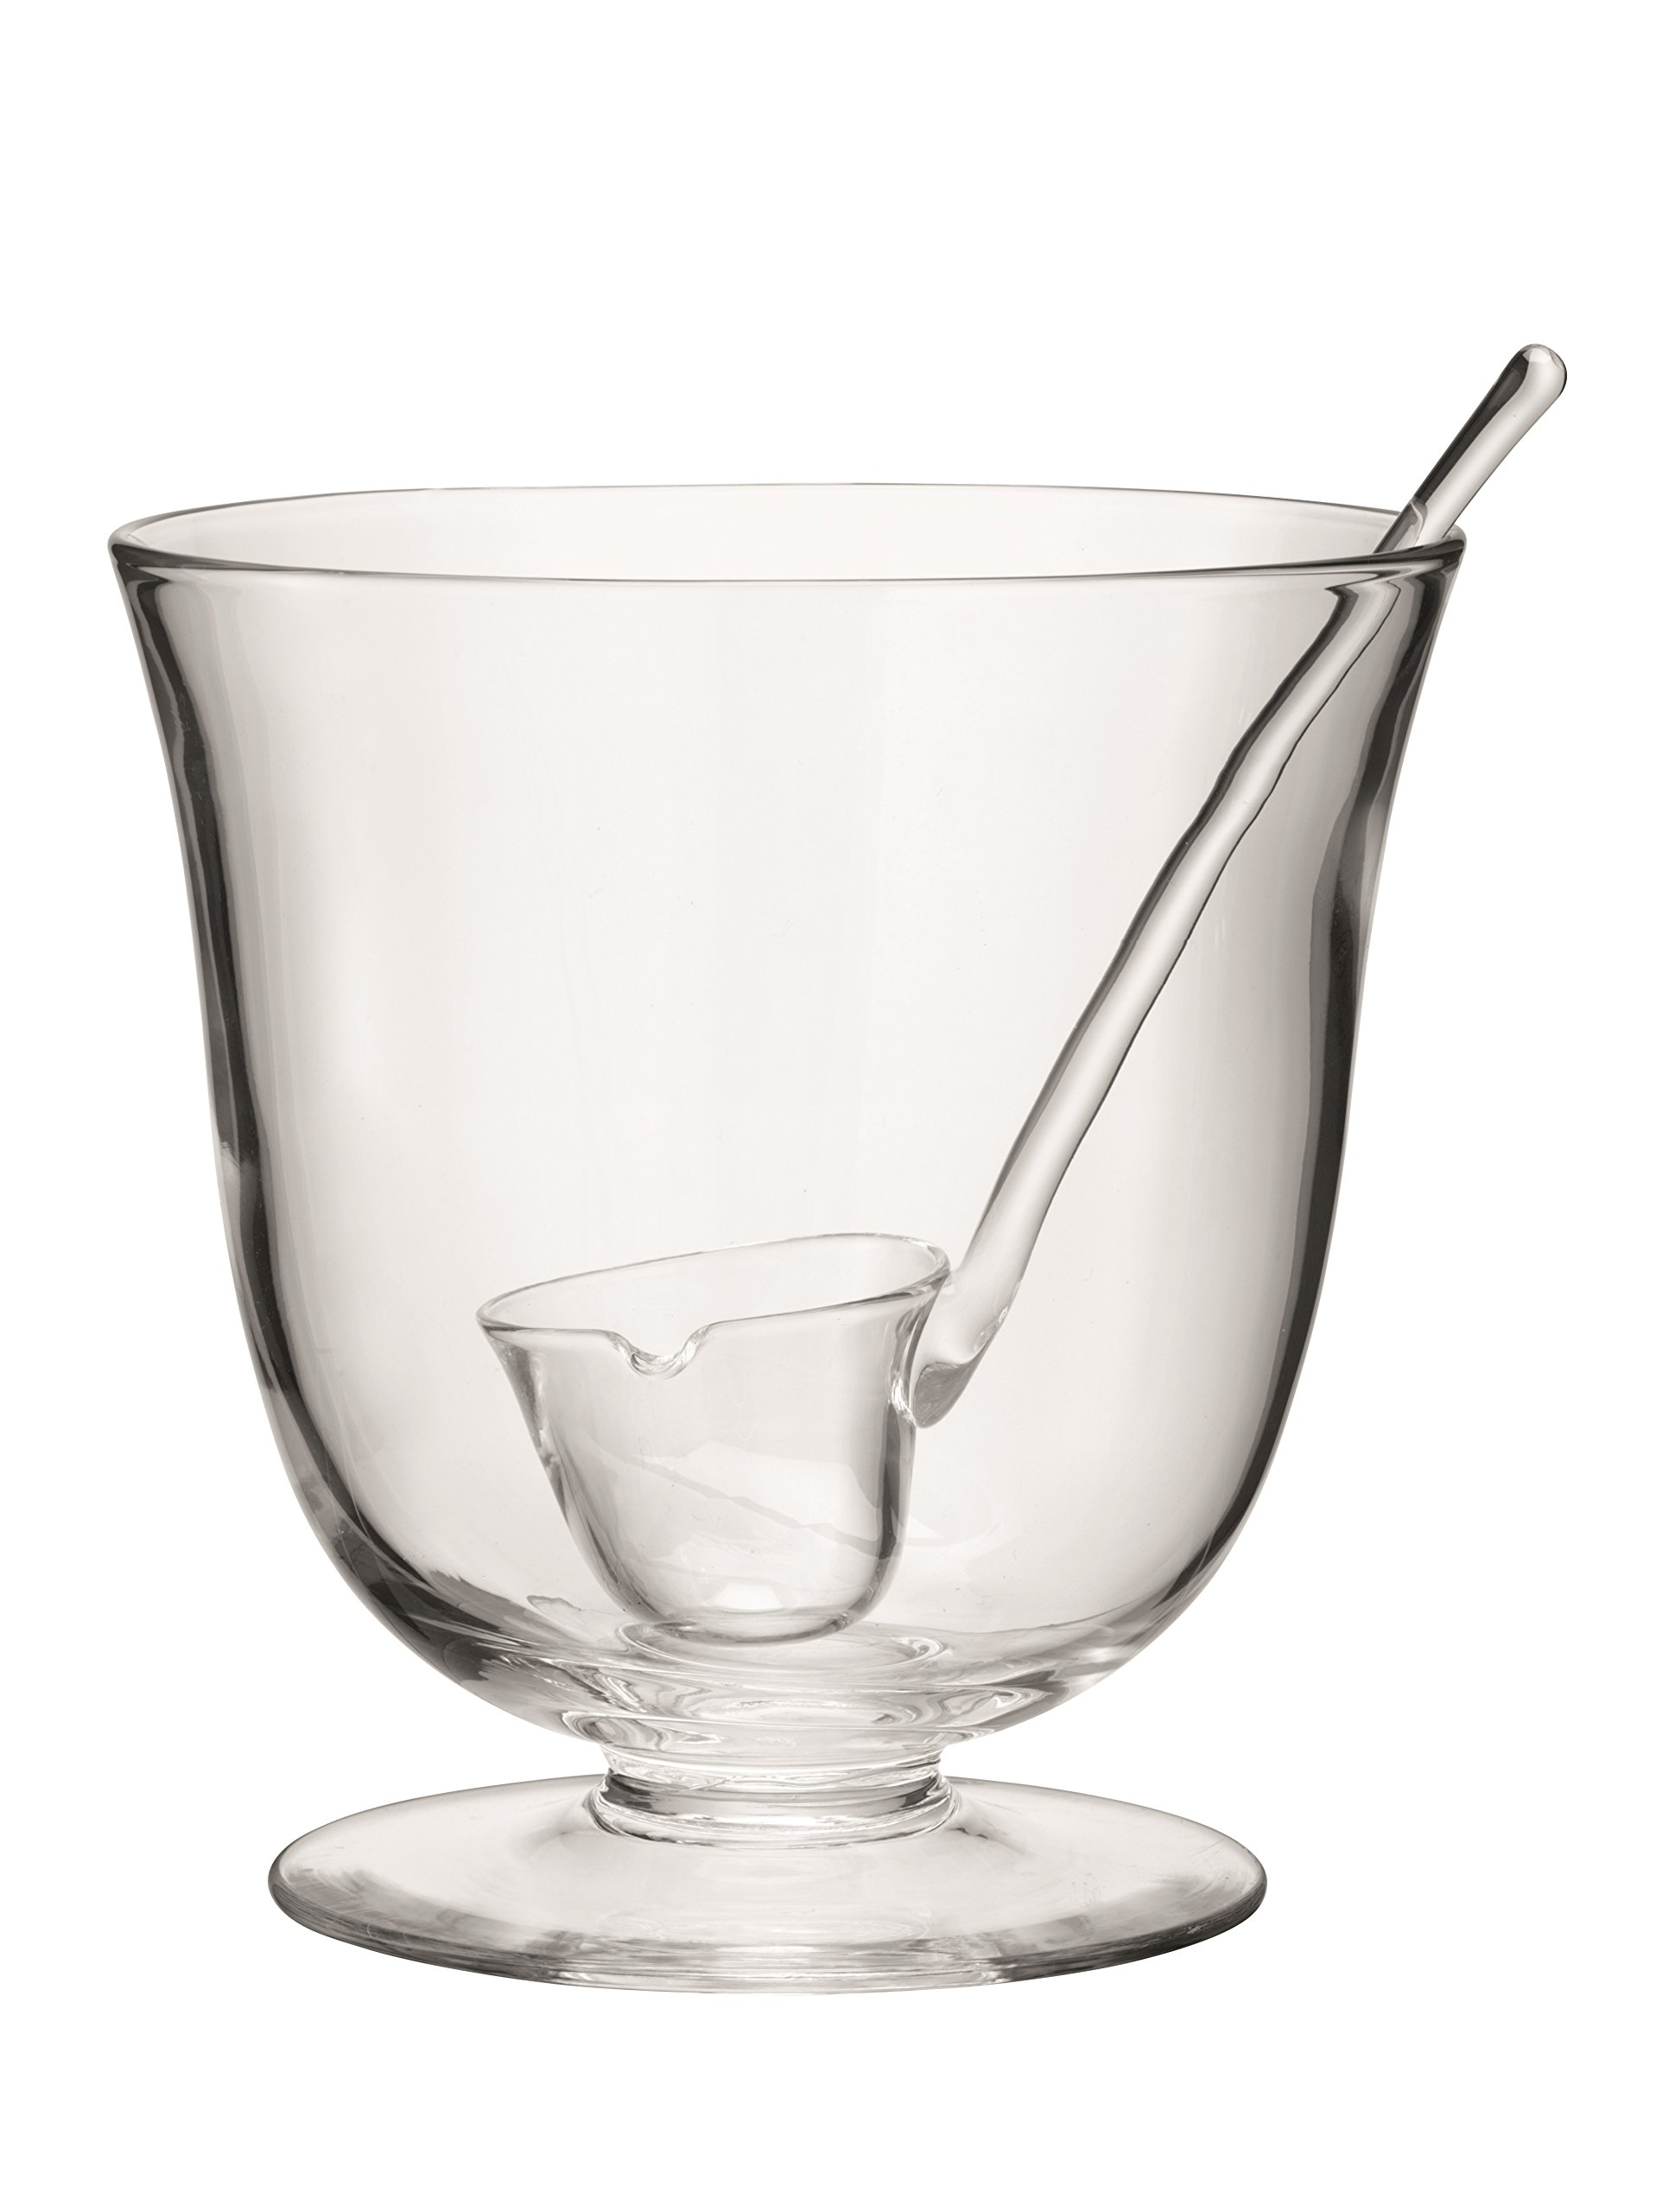 LSA International Serve Punchbowl & Ladle, 9.75'', Clear